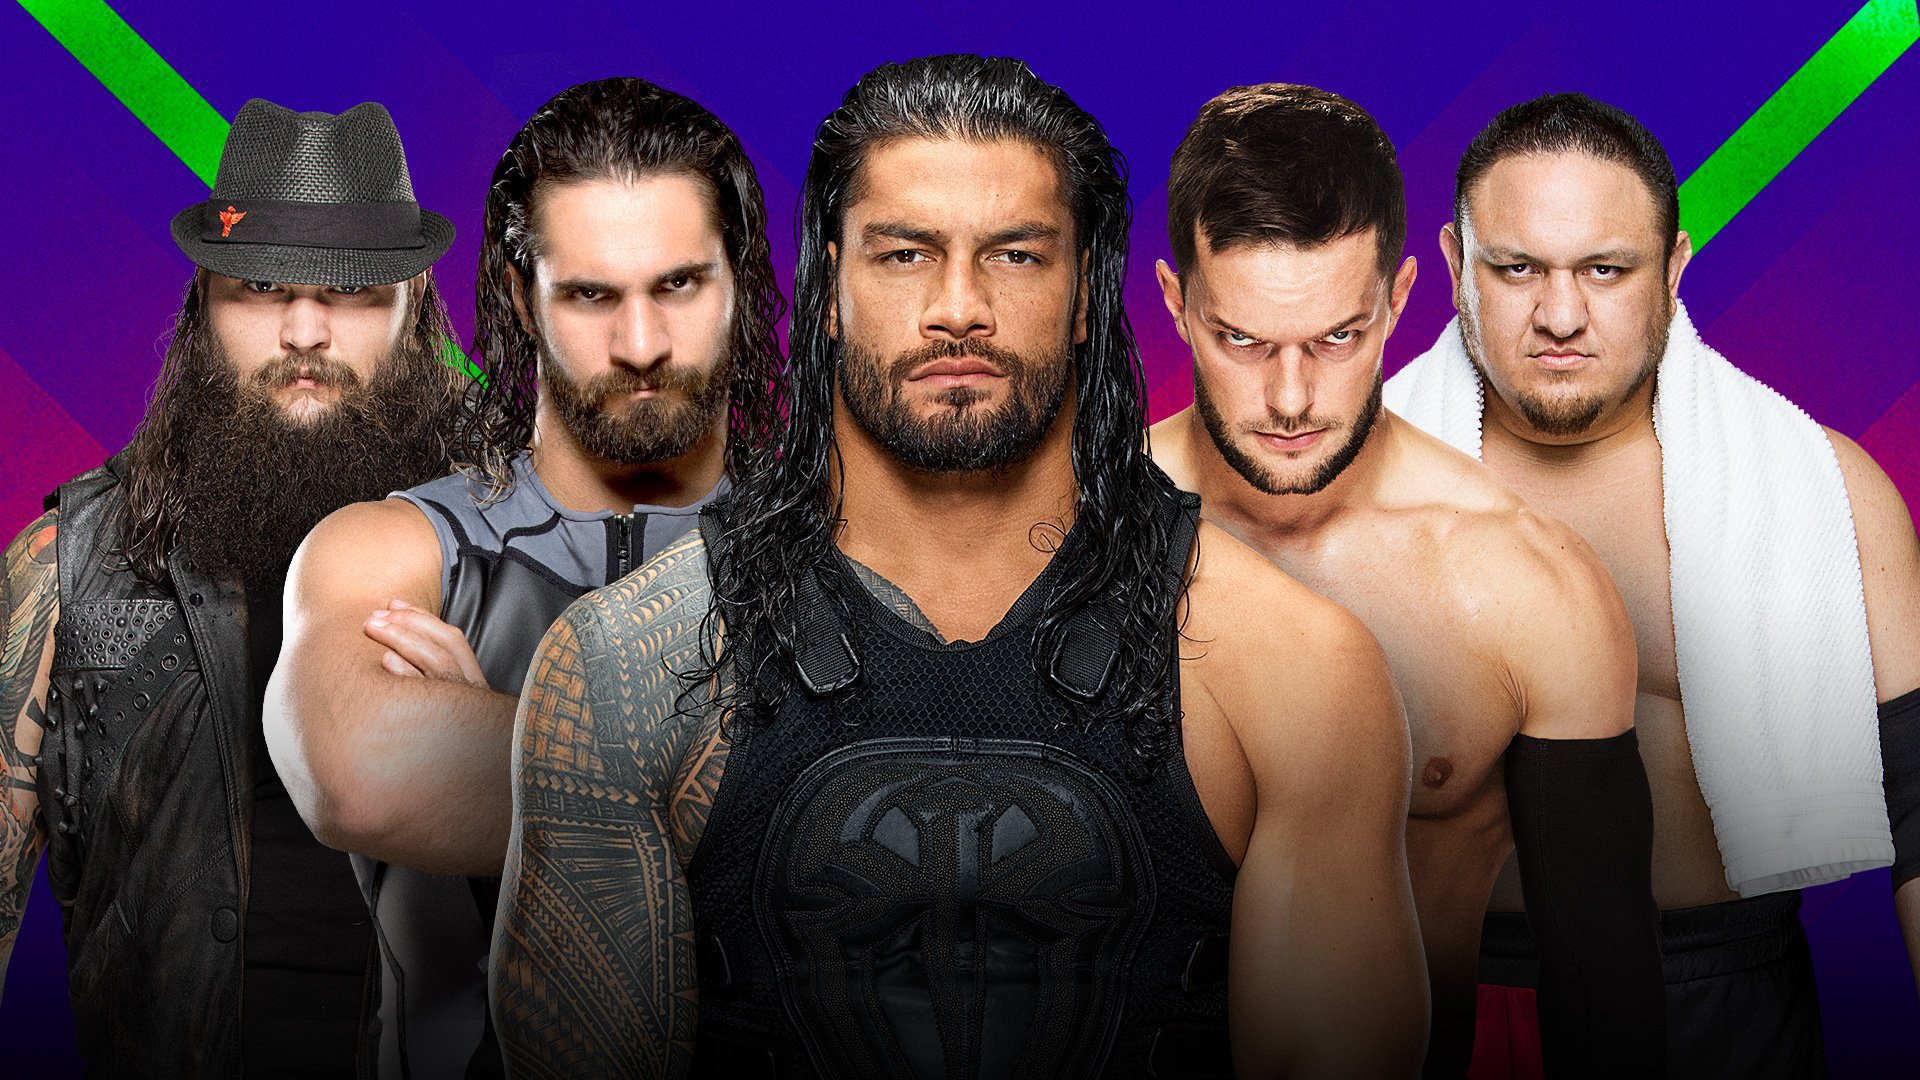 WWE Extreme Rules 2017: Bray Wyatt vs. Seth Rollins vs. Roman Reigns vs. Finn Bálor vs. Samoa Joe